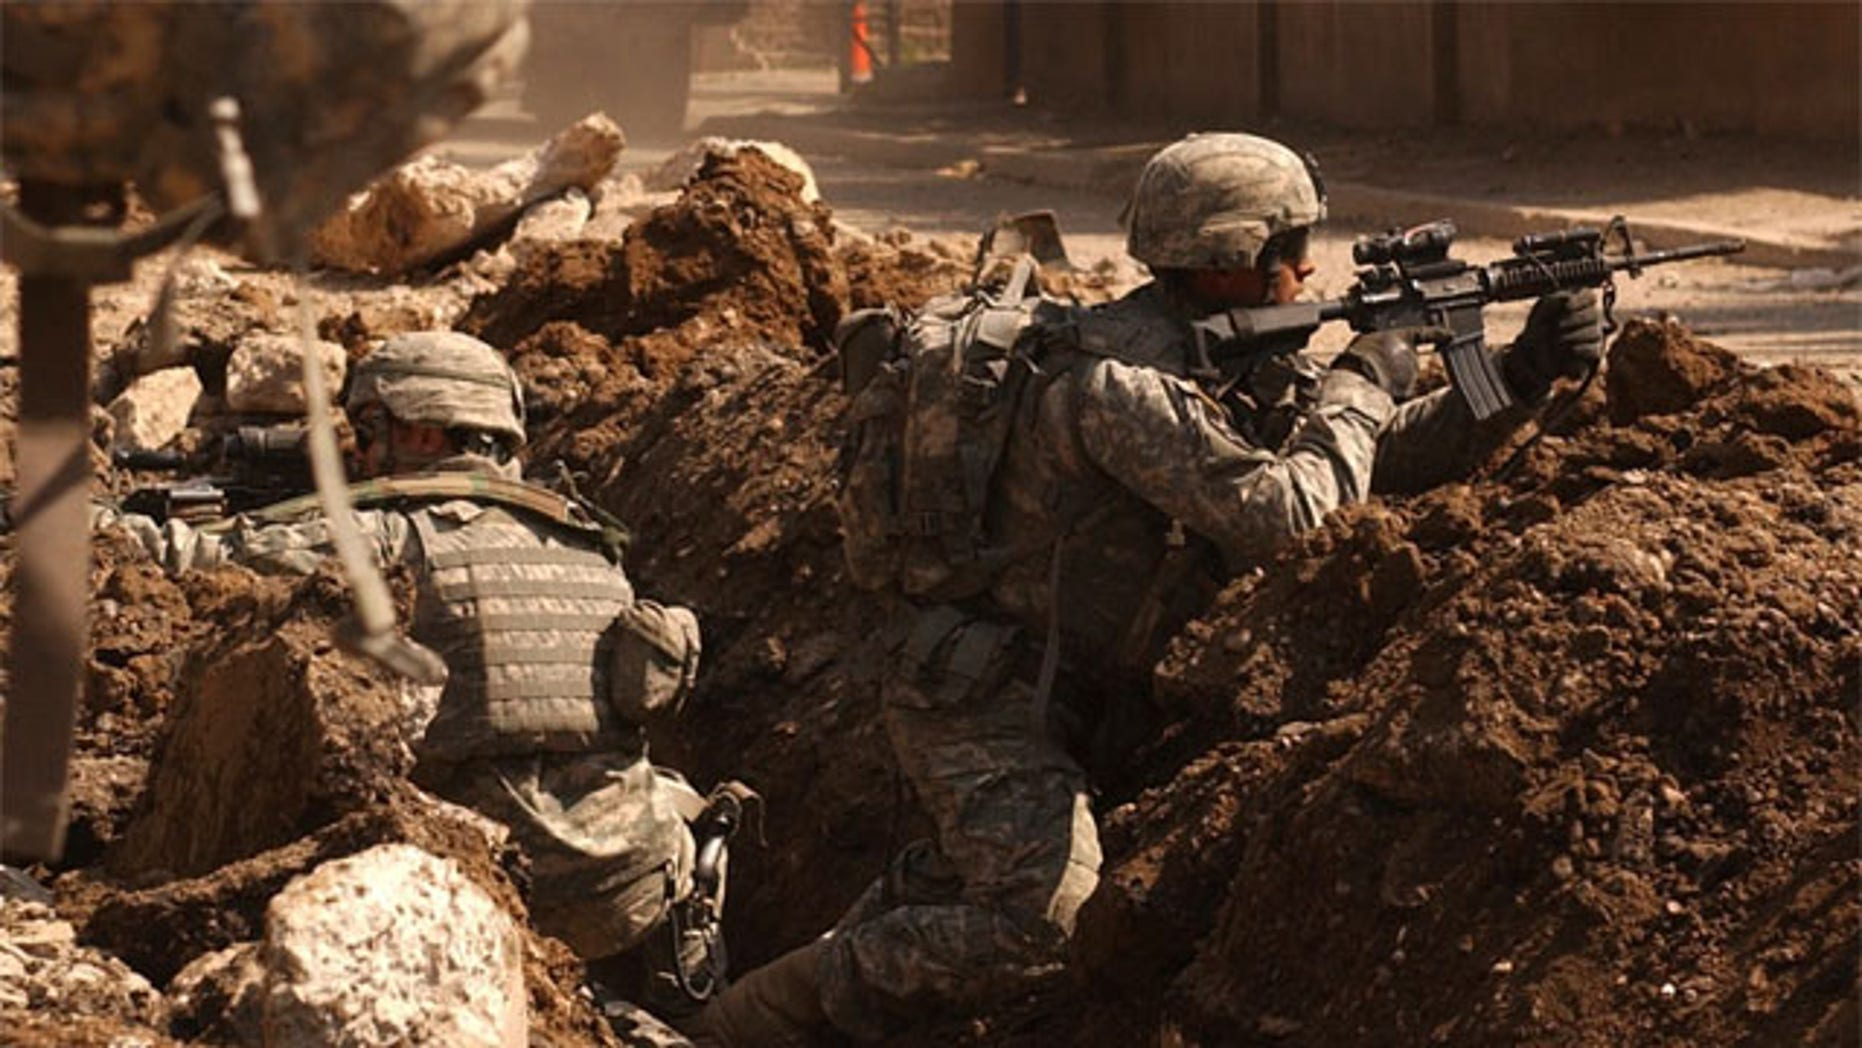 Soldiers occasionally get a sixth sense feeling about battlefield dangers. Here, Sgt. Auralie Suarez and Pvt. Brett Mansink take cover during a firefight with anti-Iraqi forces in the Al Doura section of Baghdad, March 7.